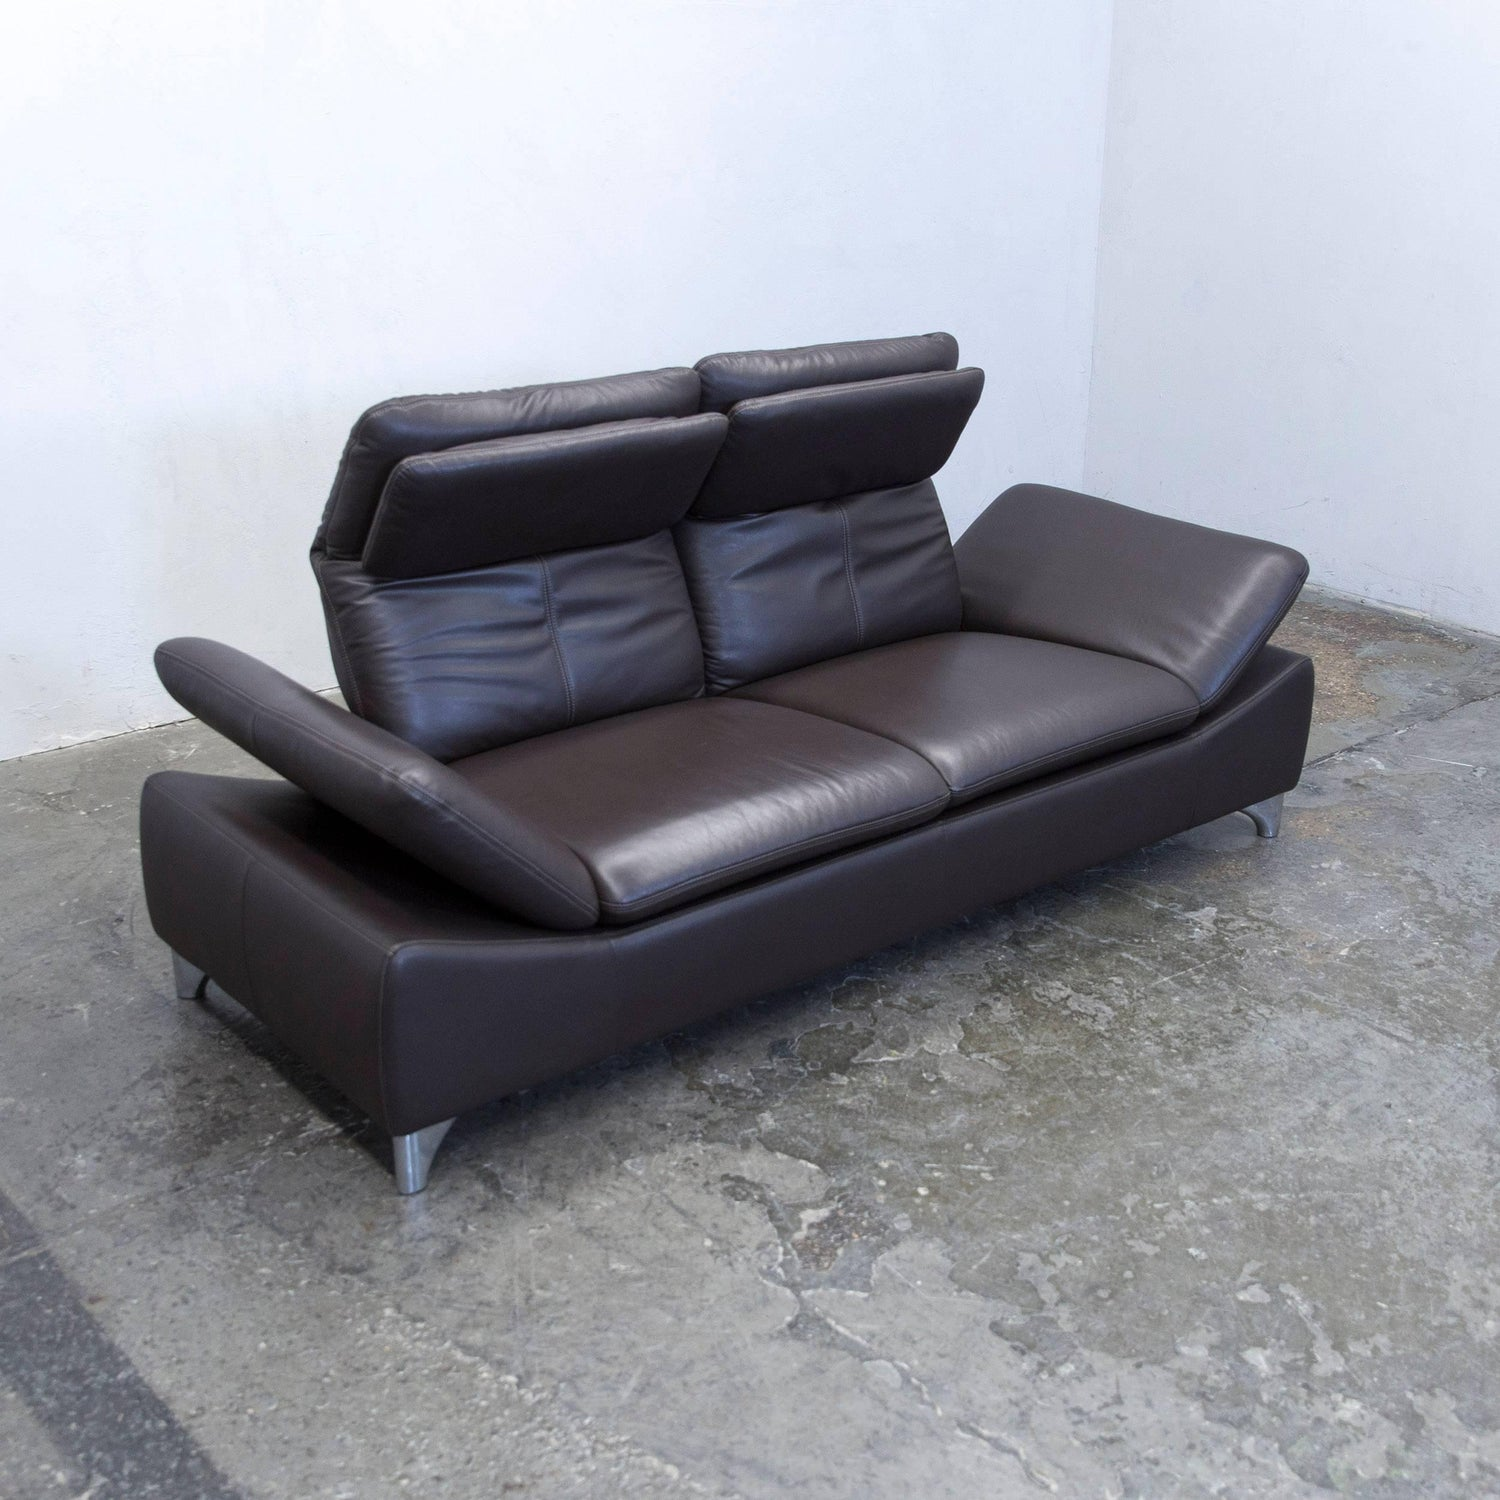 Bezaubernd Schillig Sofas Sammlung Von Willi Designer Sofa Leather Brown Two-seat Function